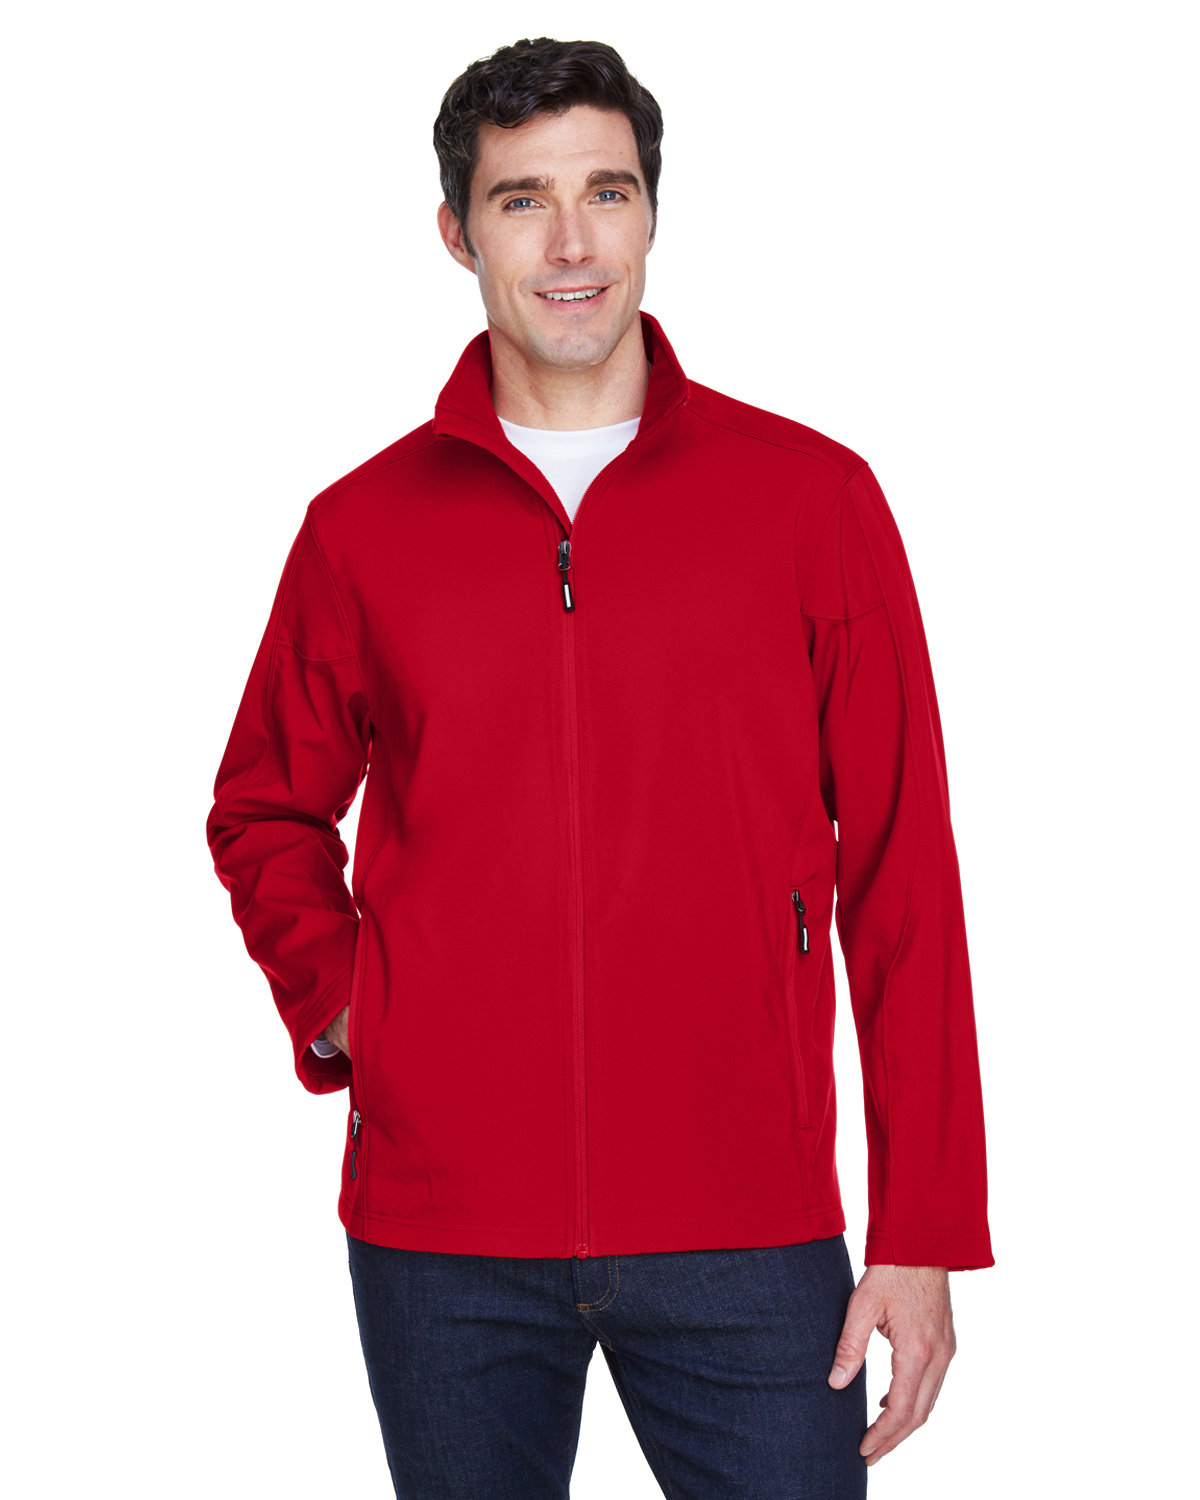 Core 365 Men's Cruise Two-Layer Fleece Bonded SoftShell Jacket CLASSIC RED